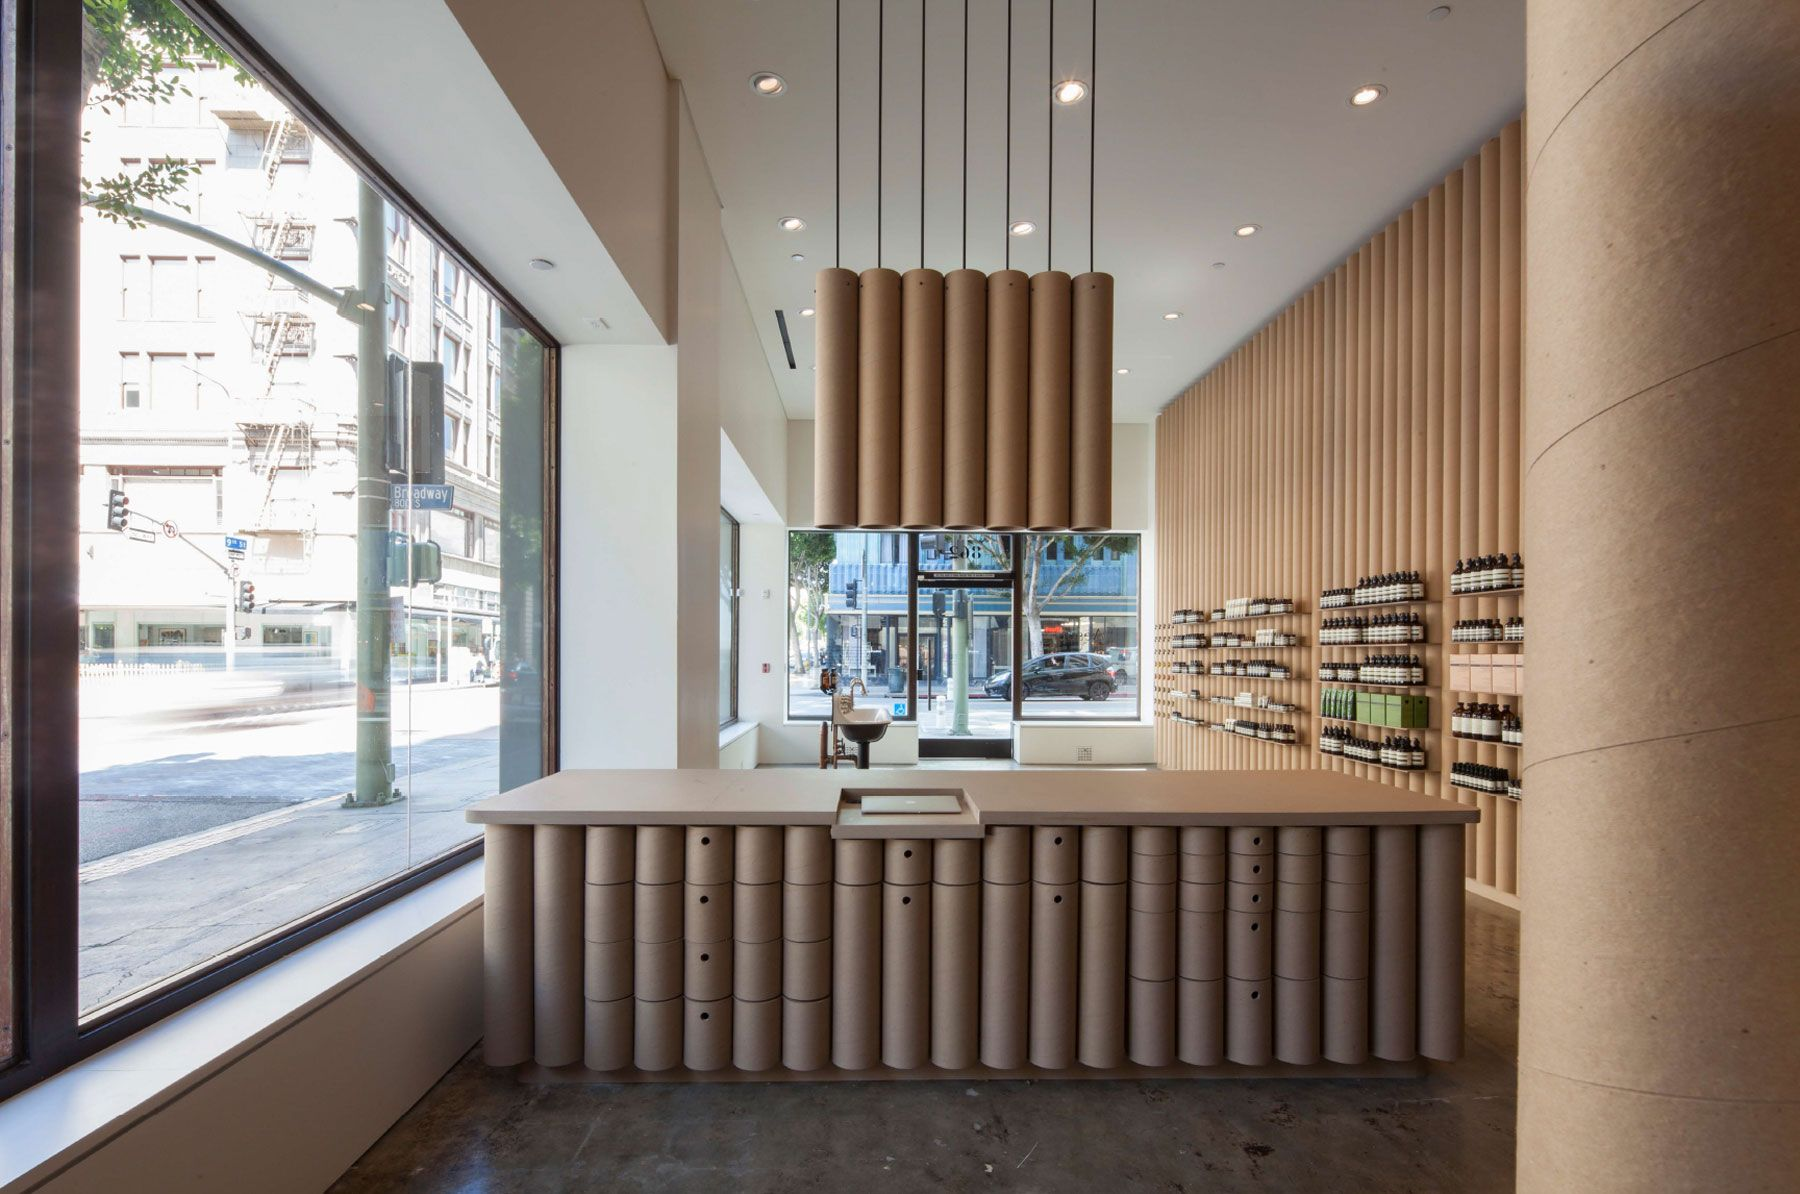 cool Brooks + Scarpa Creates AESOP DTLA Interior from Cardboard Tubes Check more at http://www.arch2o.com/brooks-scarpa-creates-aesop-dtla-interior-cardboard-tubes/